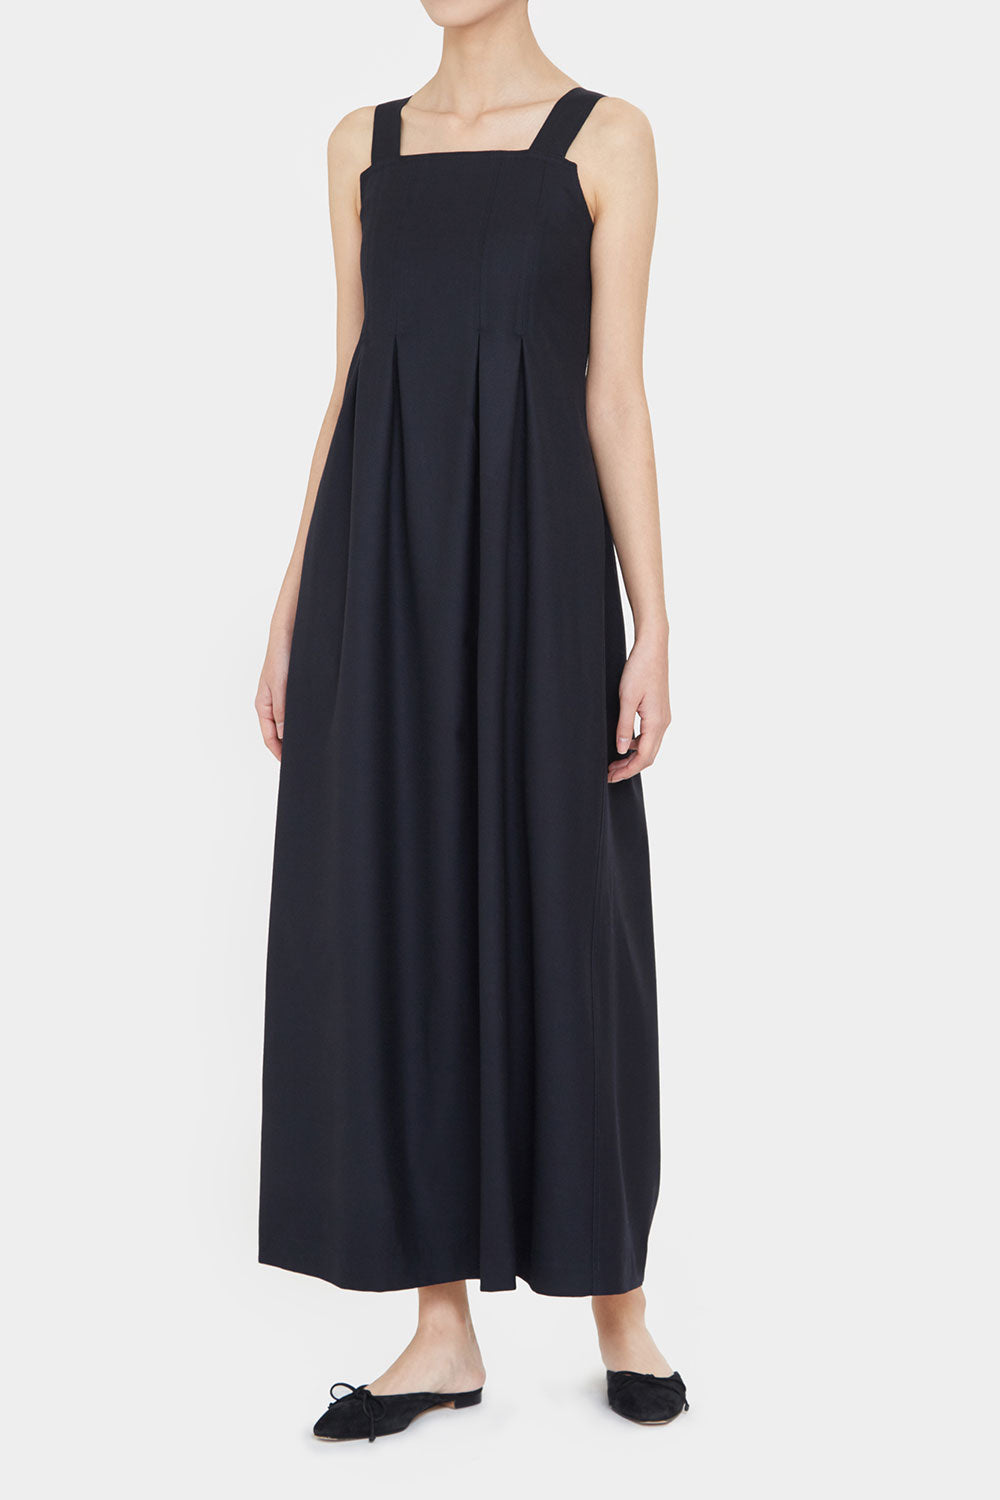 NAVY  KLOE LONG DRESS